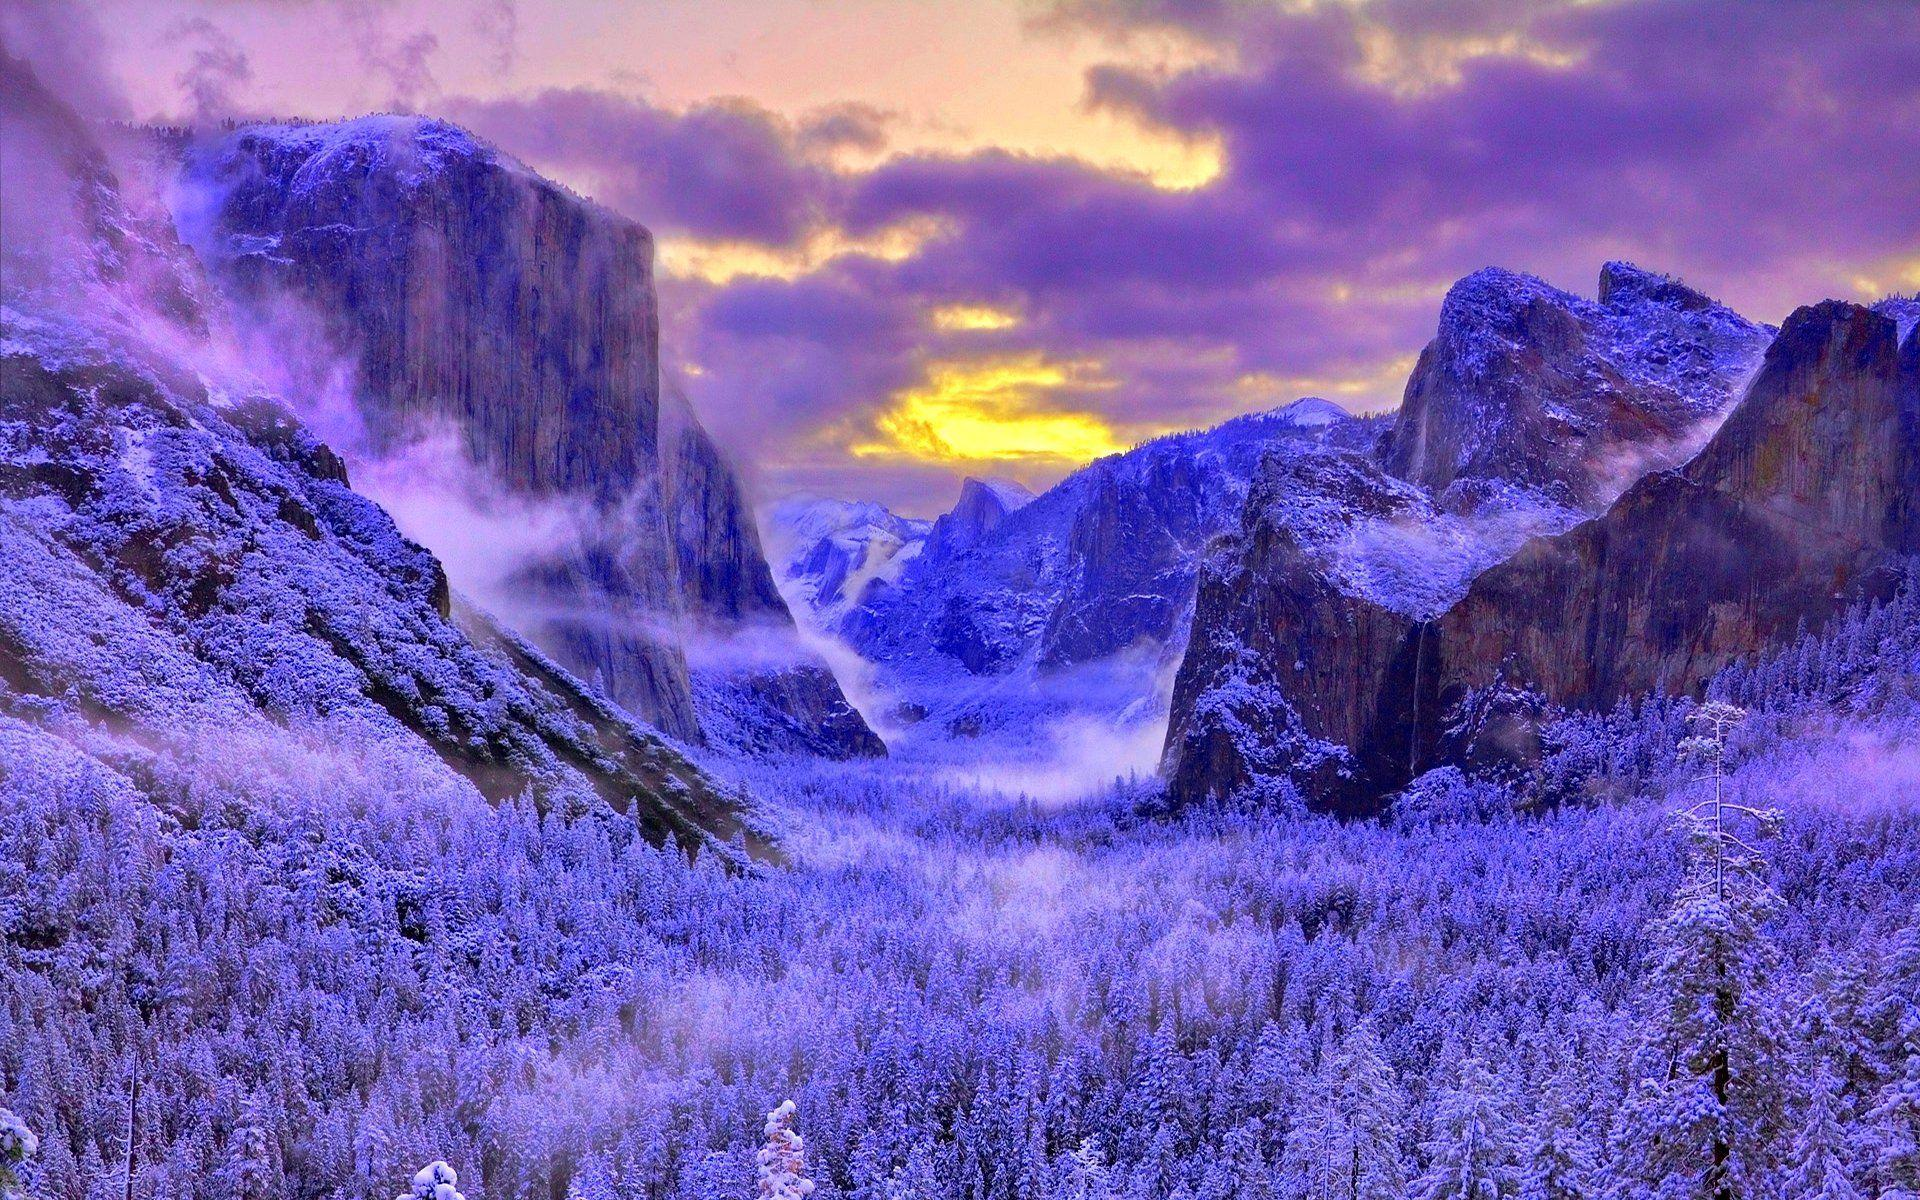 55 Yosemite National Park HD Wallpapers